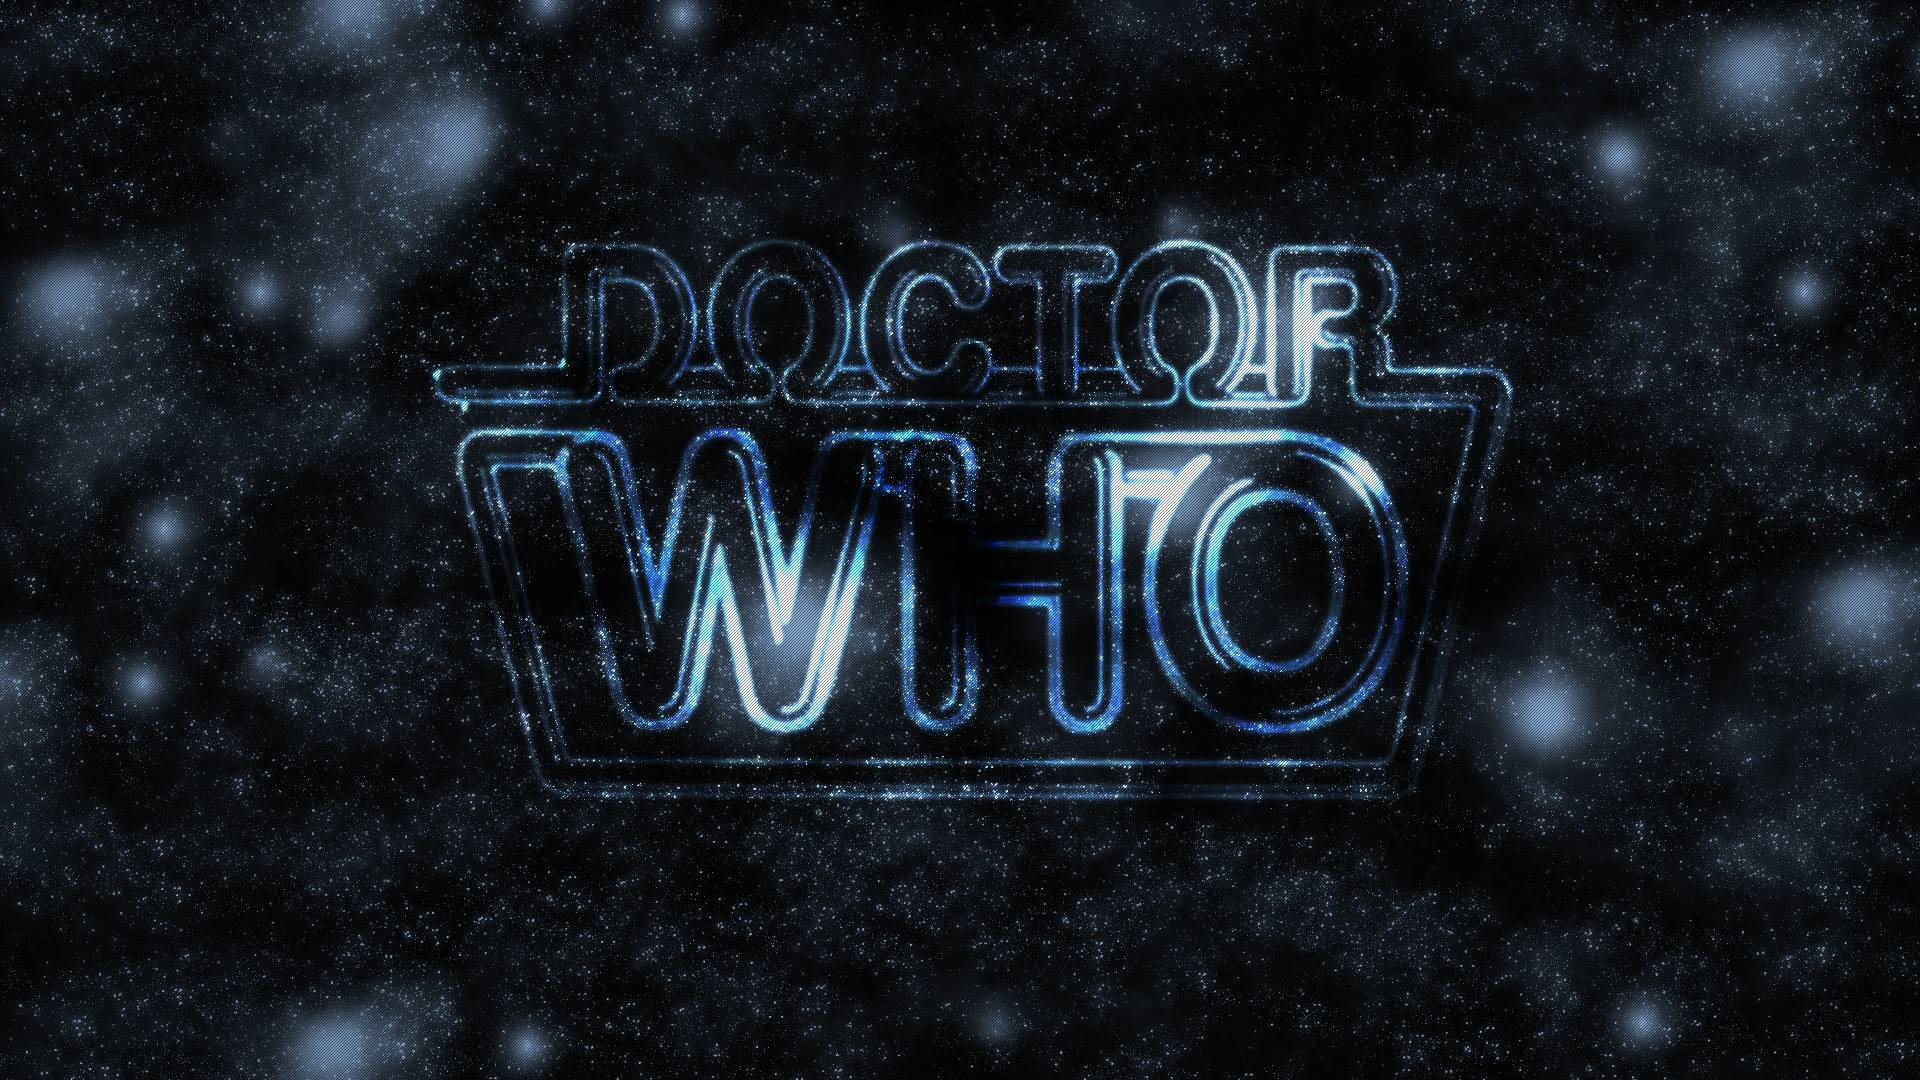 dr who wallpaper (69+ images)